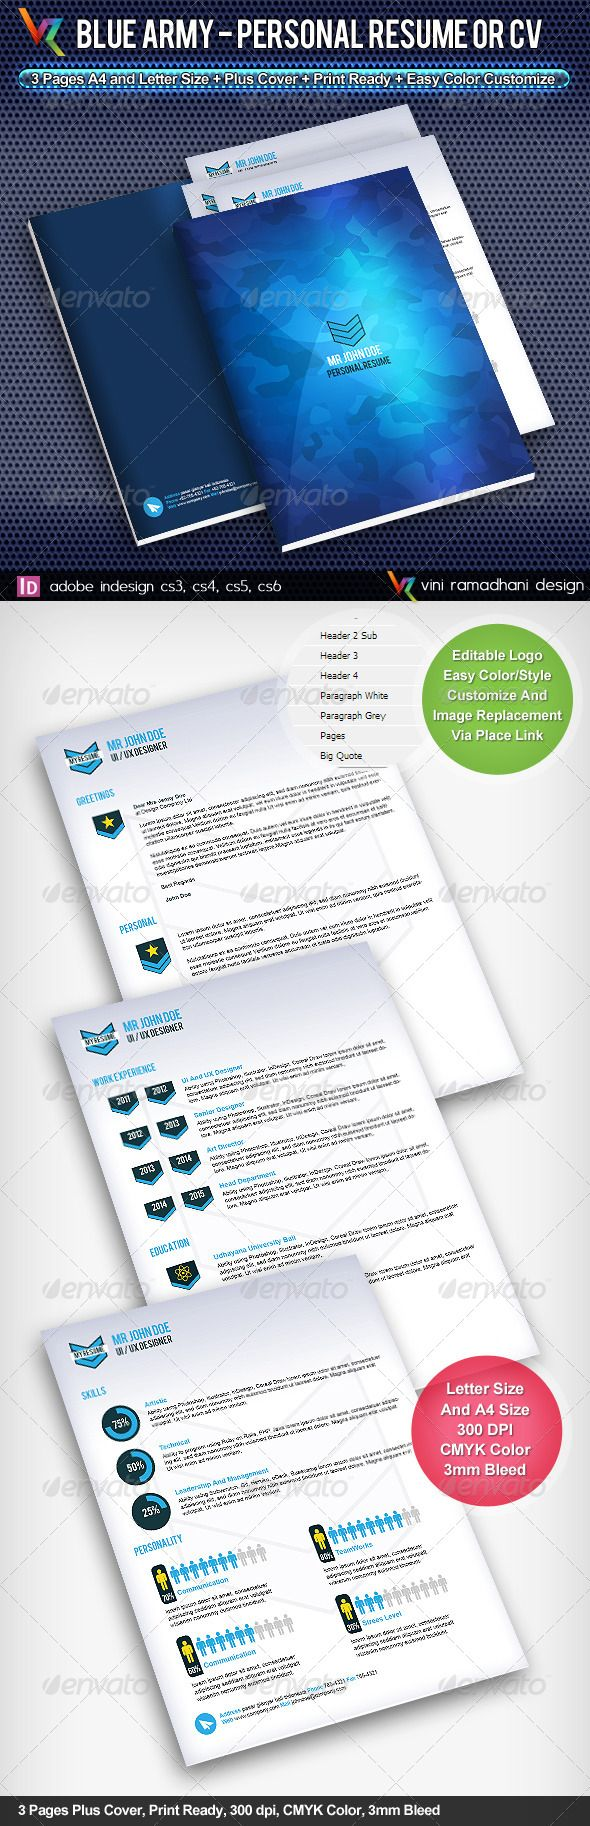 interview call letter format%0A Blue Army Resume Or CV